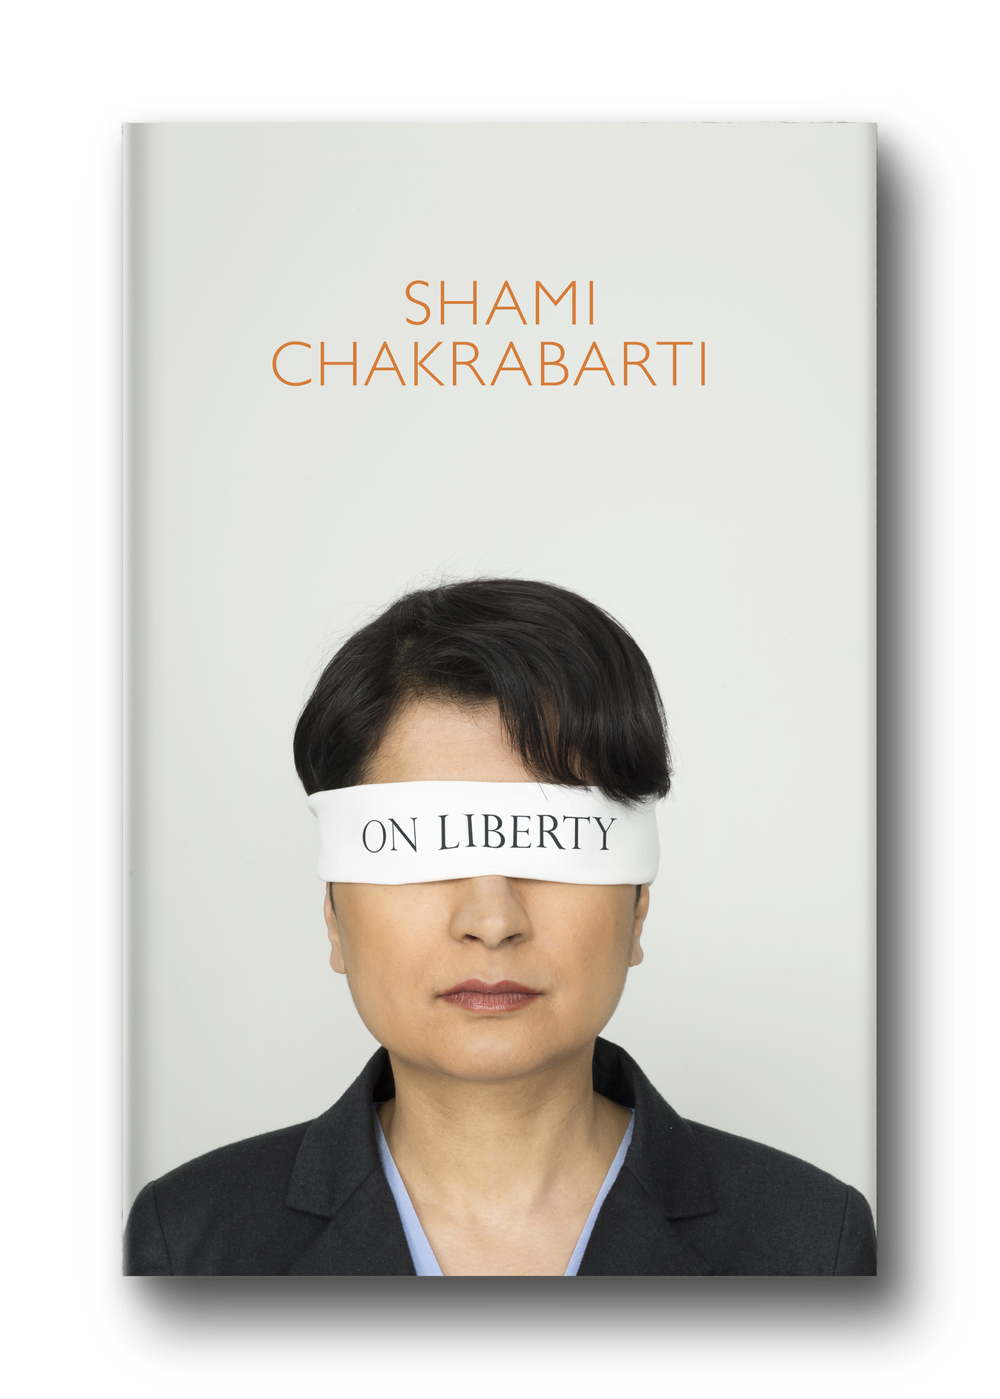 On Liberty by Shami Chakrabarti - Art Direction/Design: Jim Stoddart Photography: Paul Stuart